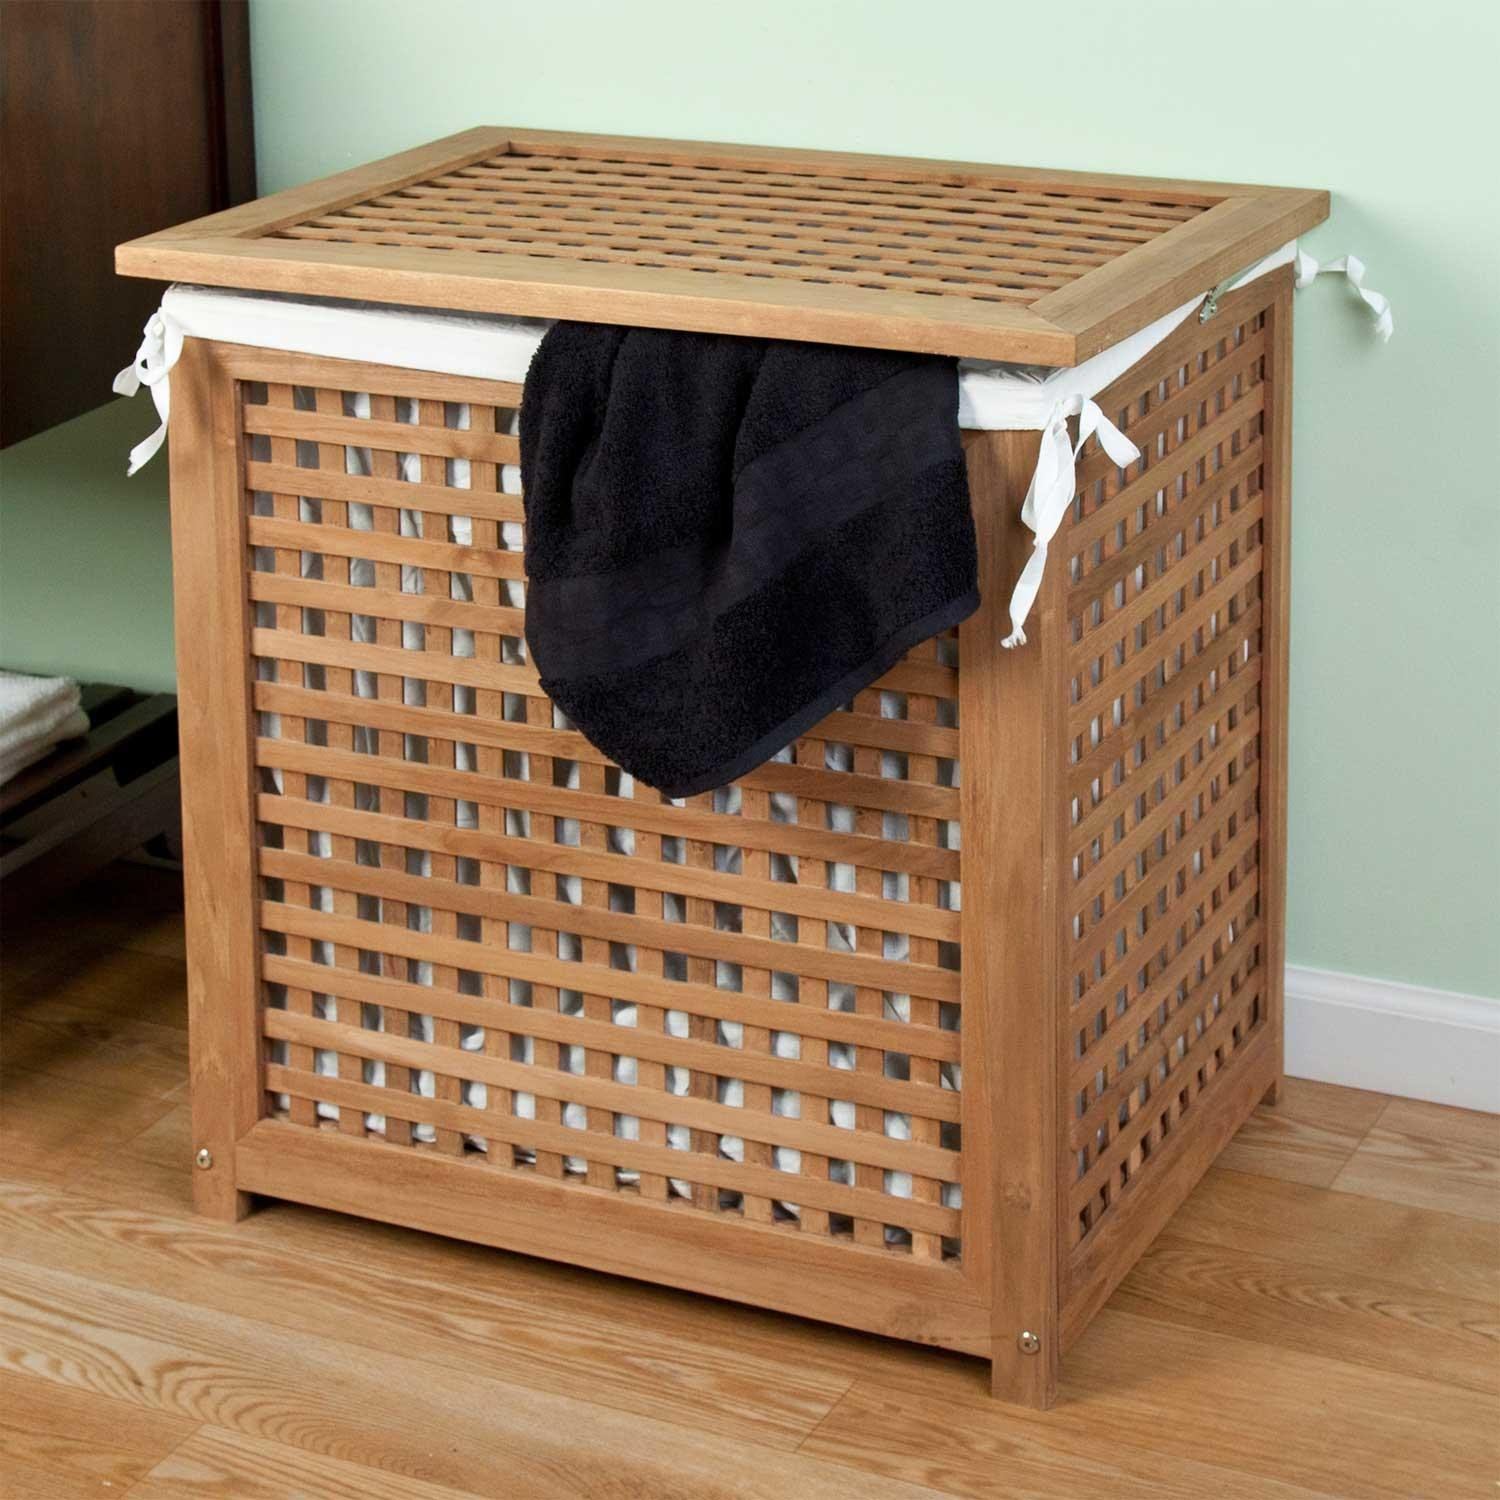 Elegant laundry hampers teak laundry hamper with lideasily conceal your laundry within this  beautiful teak aybzqtc